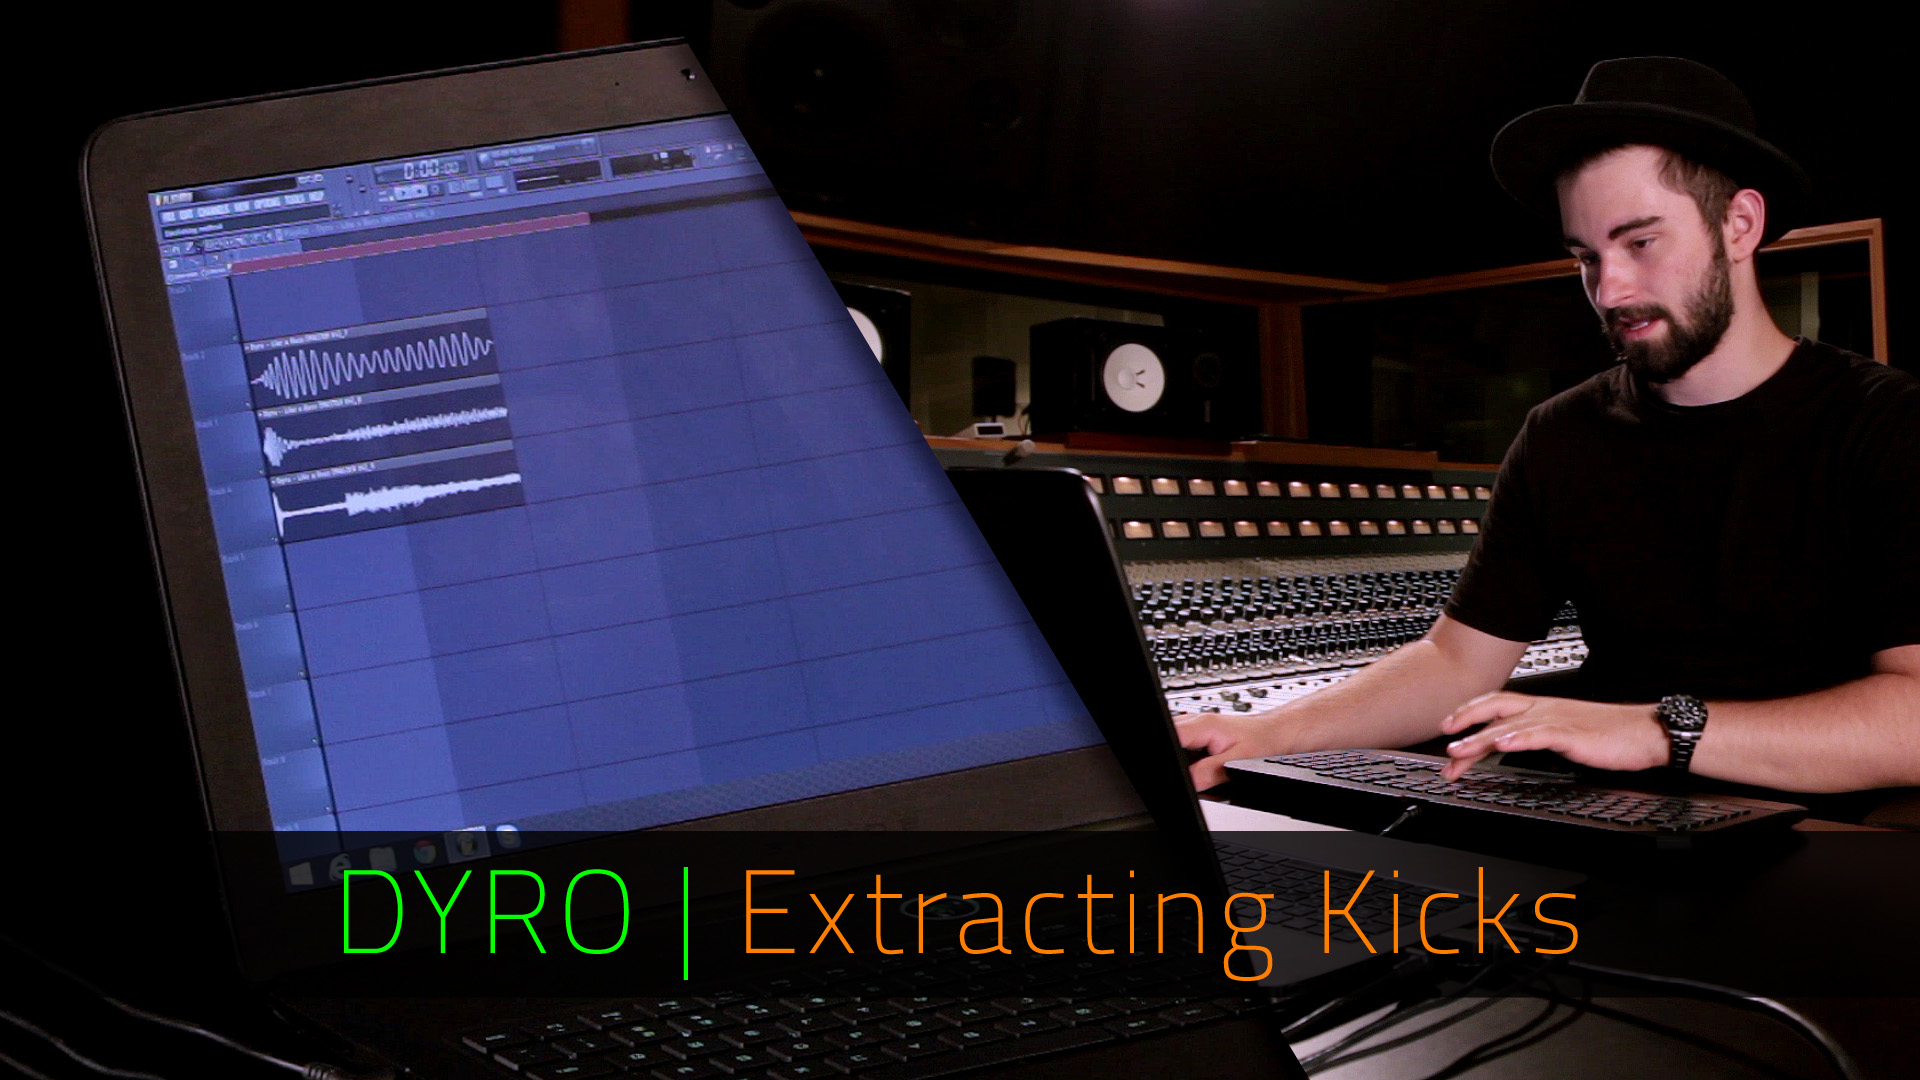 DYRO | Extracting Kicks